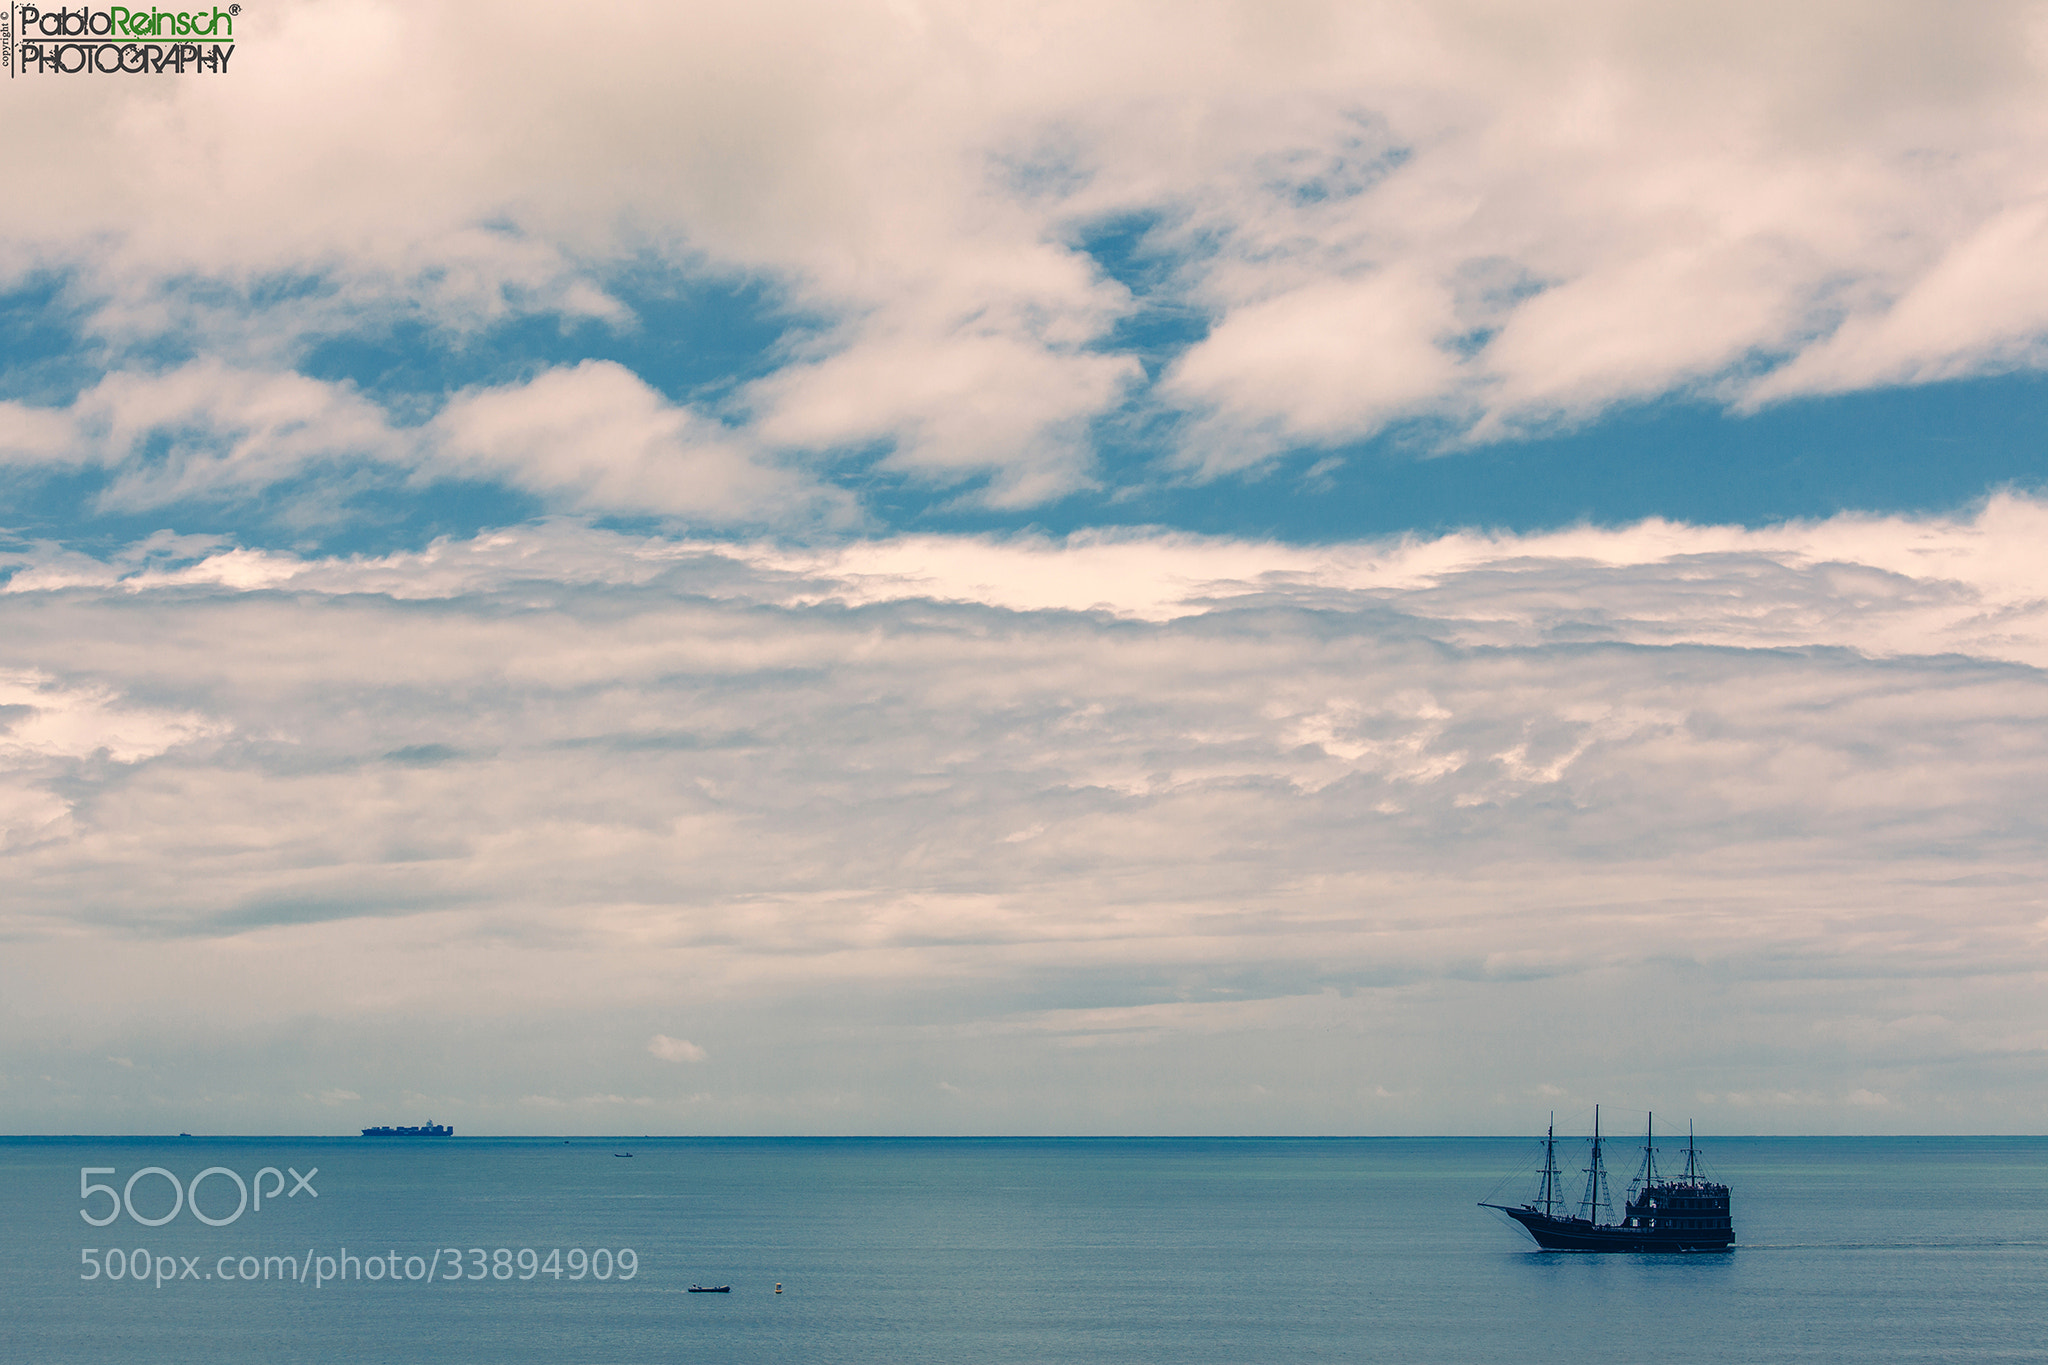 Photograph Azul y blanco.- by Pablo Reinsch on 500px